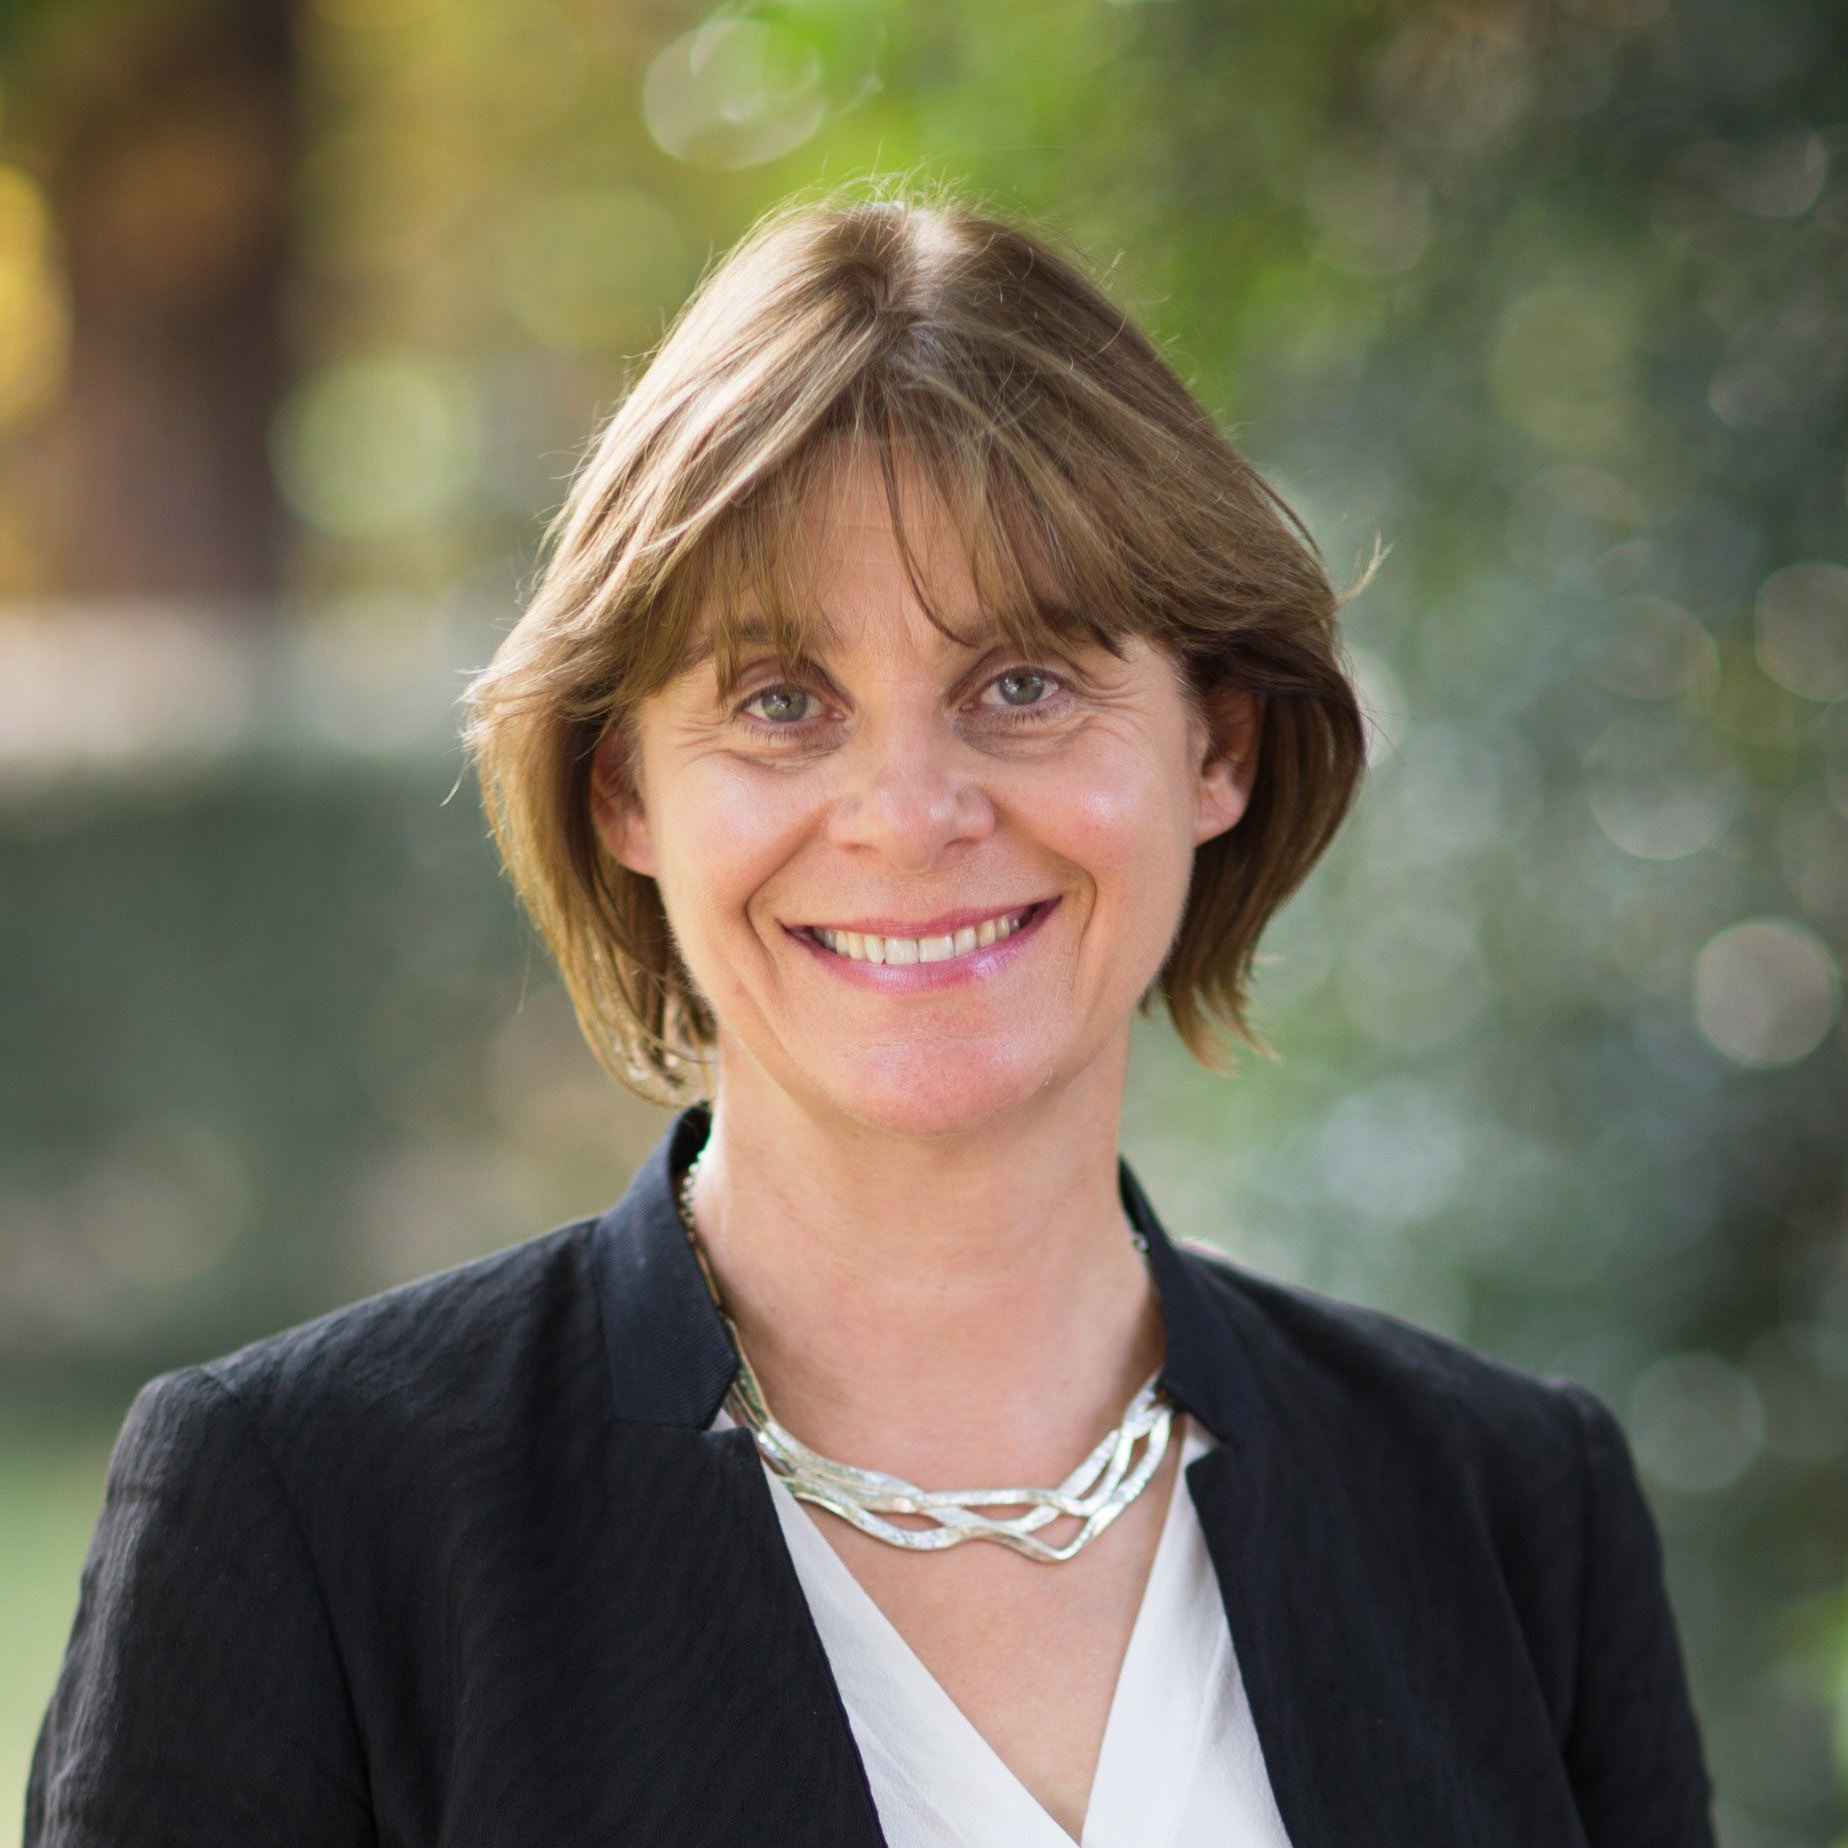 Professor Sarah Harper - Gerontology, University of Oxford; Founding Director of the Oxford Institute of Population Ageing